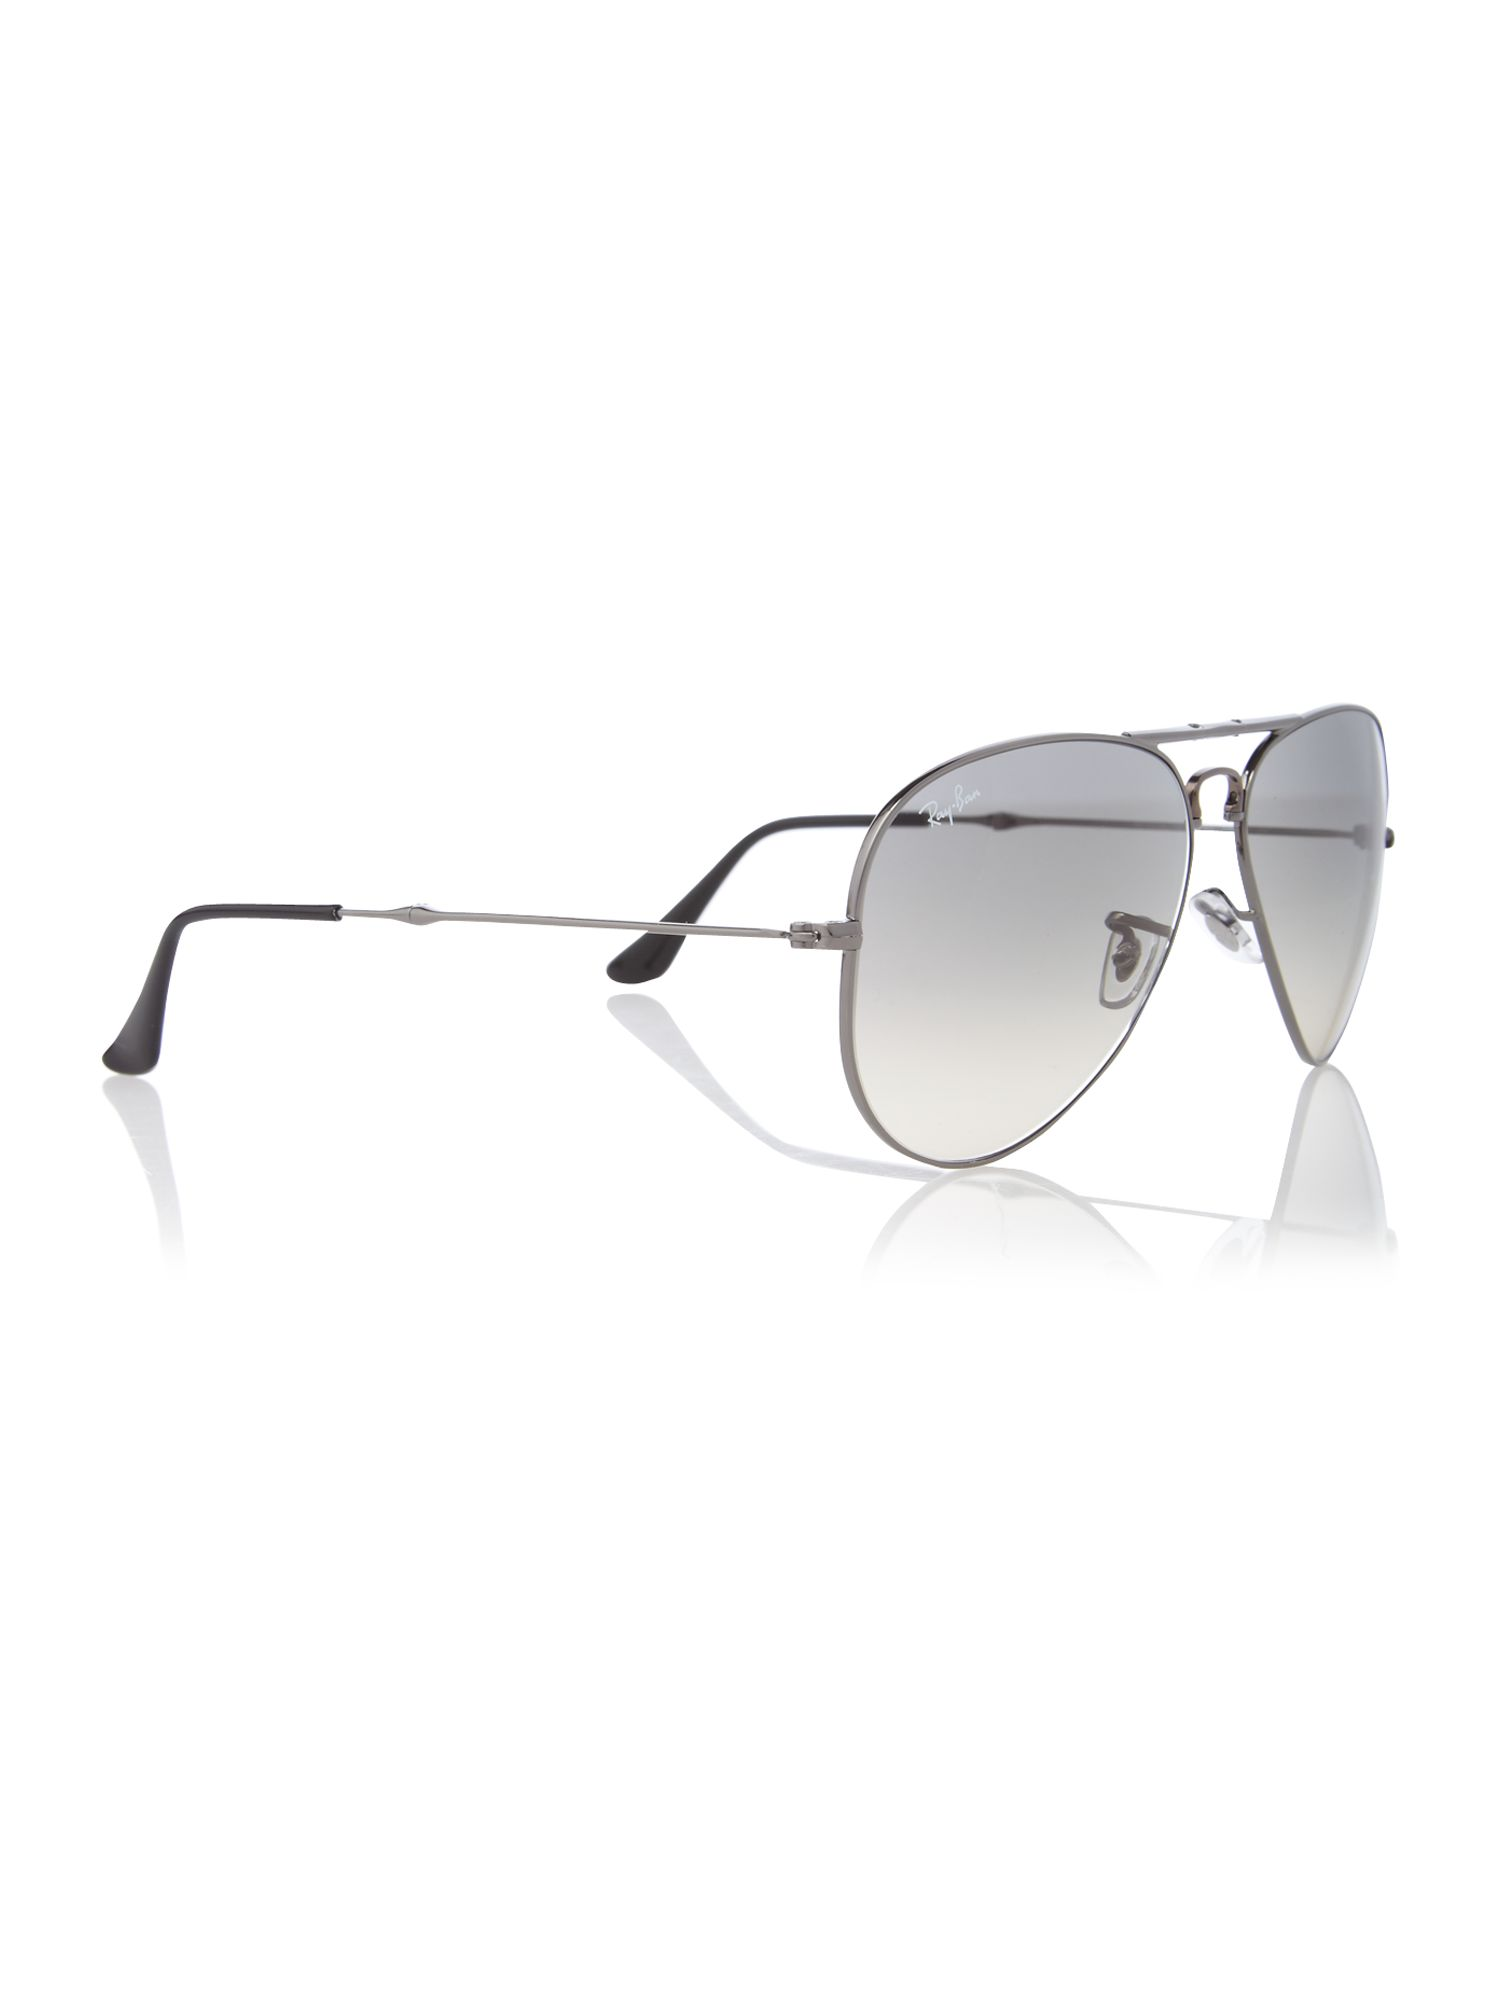 Unisex RB3479 004/32 Folding Aviator Sunglasses